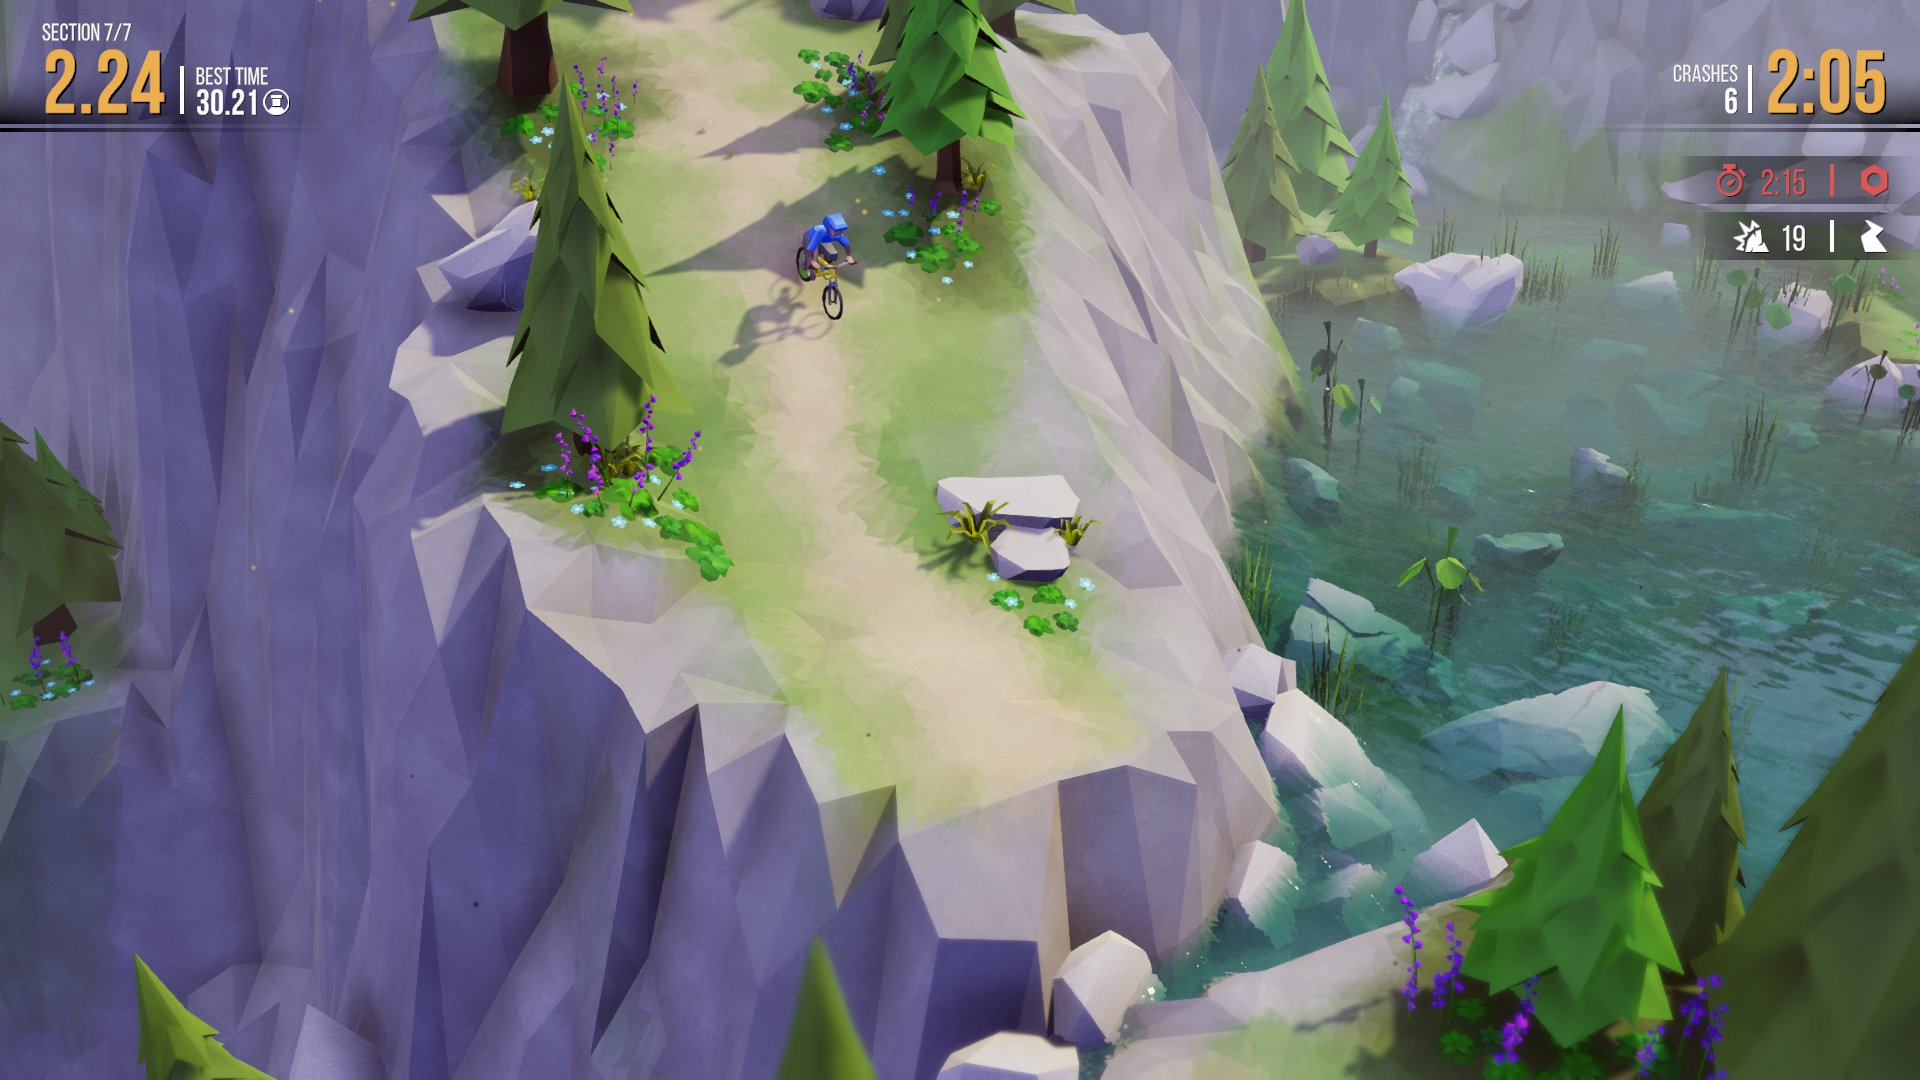 A screenshot of your rider hurtling down a steep incline towards, but hopefully not into, a lake.